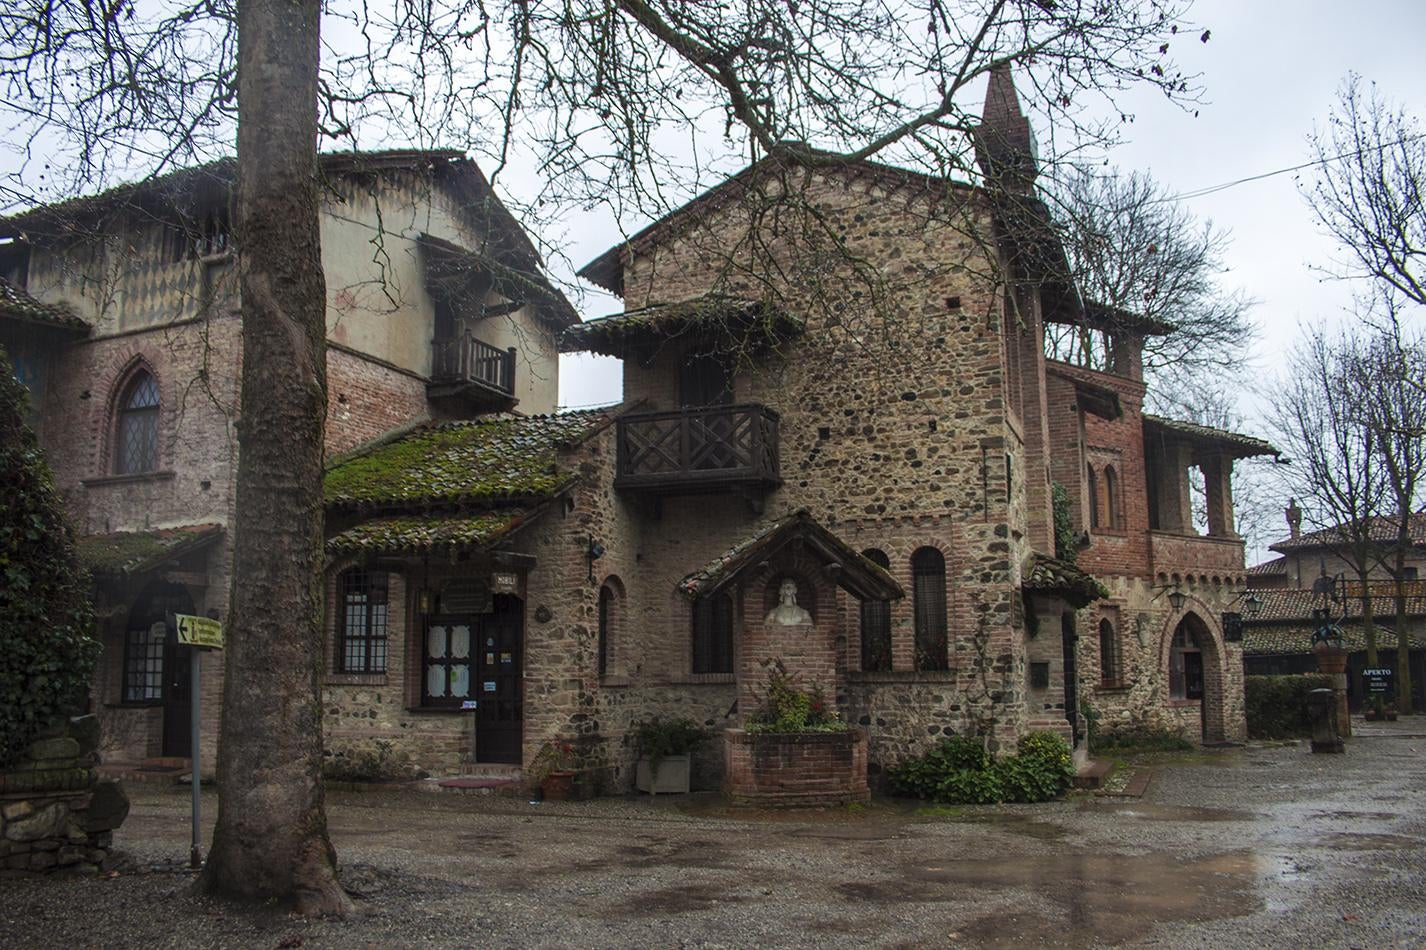 Casa Rural en Grazzano Visconti